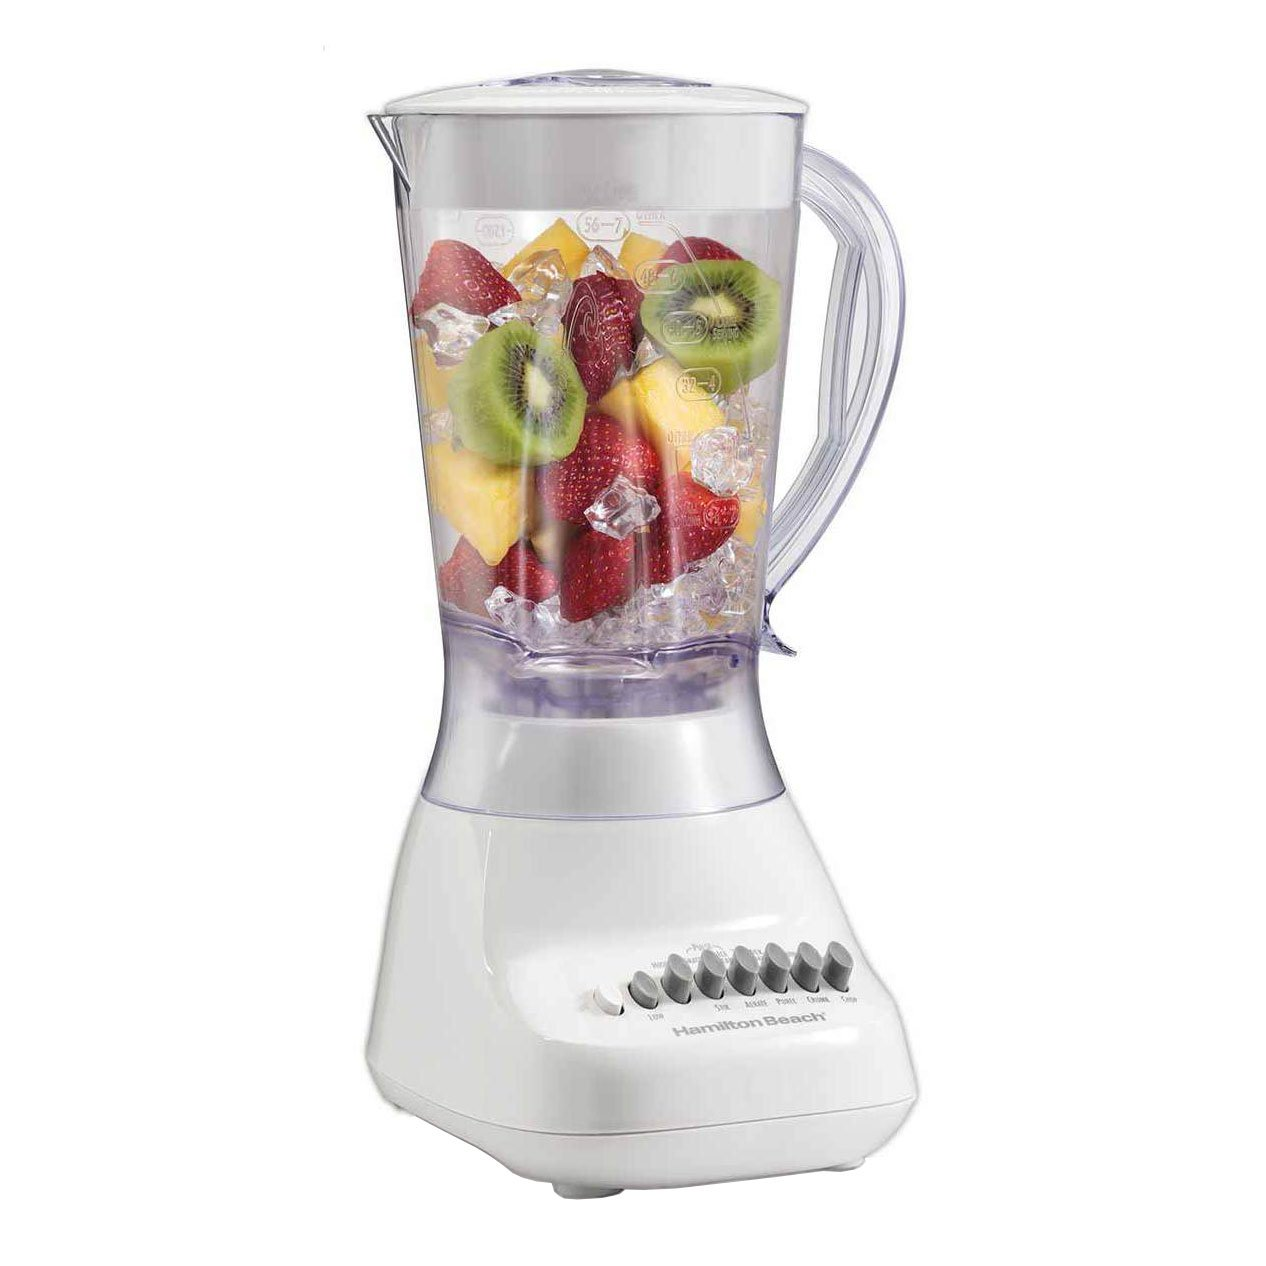 HAMILTON BEACH BRANDS INC 50166 10SPD 400W White Smoothie Blender 56-Ounce